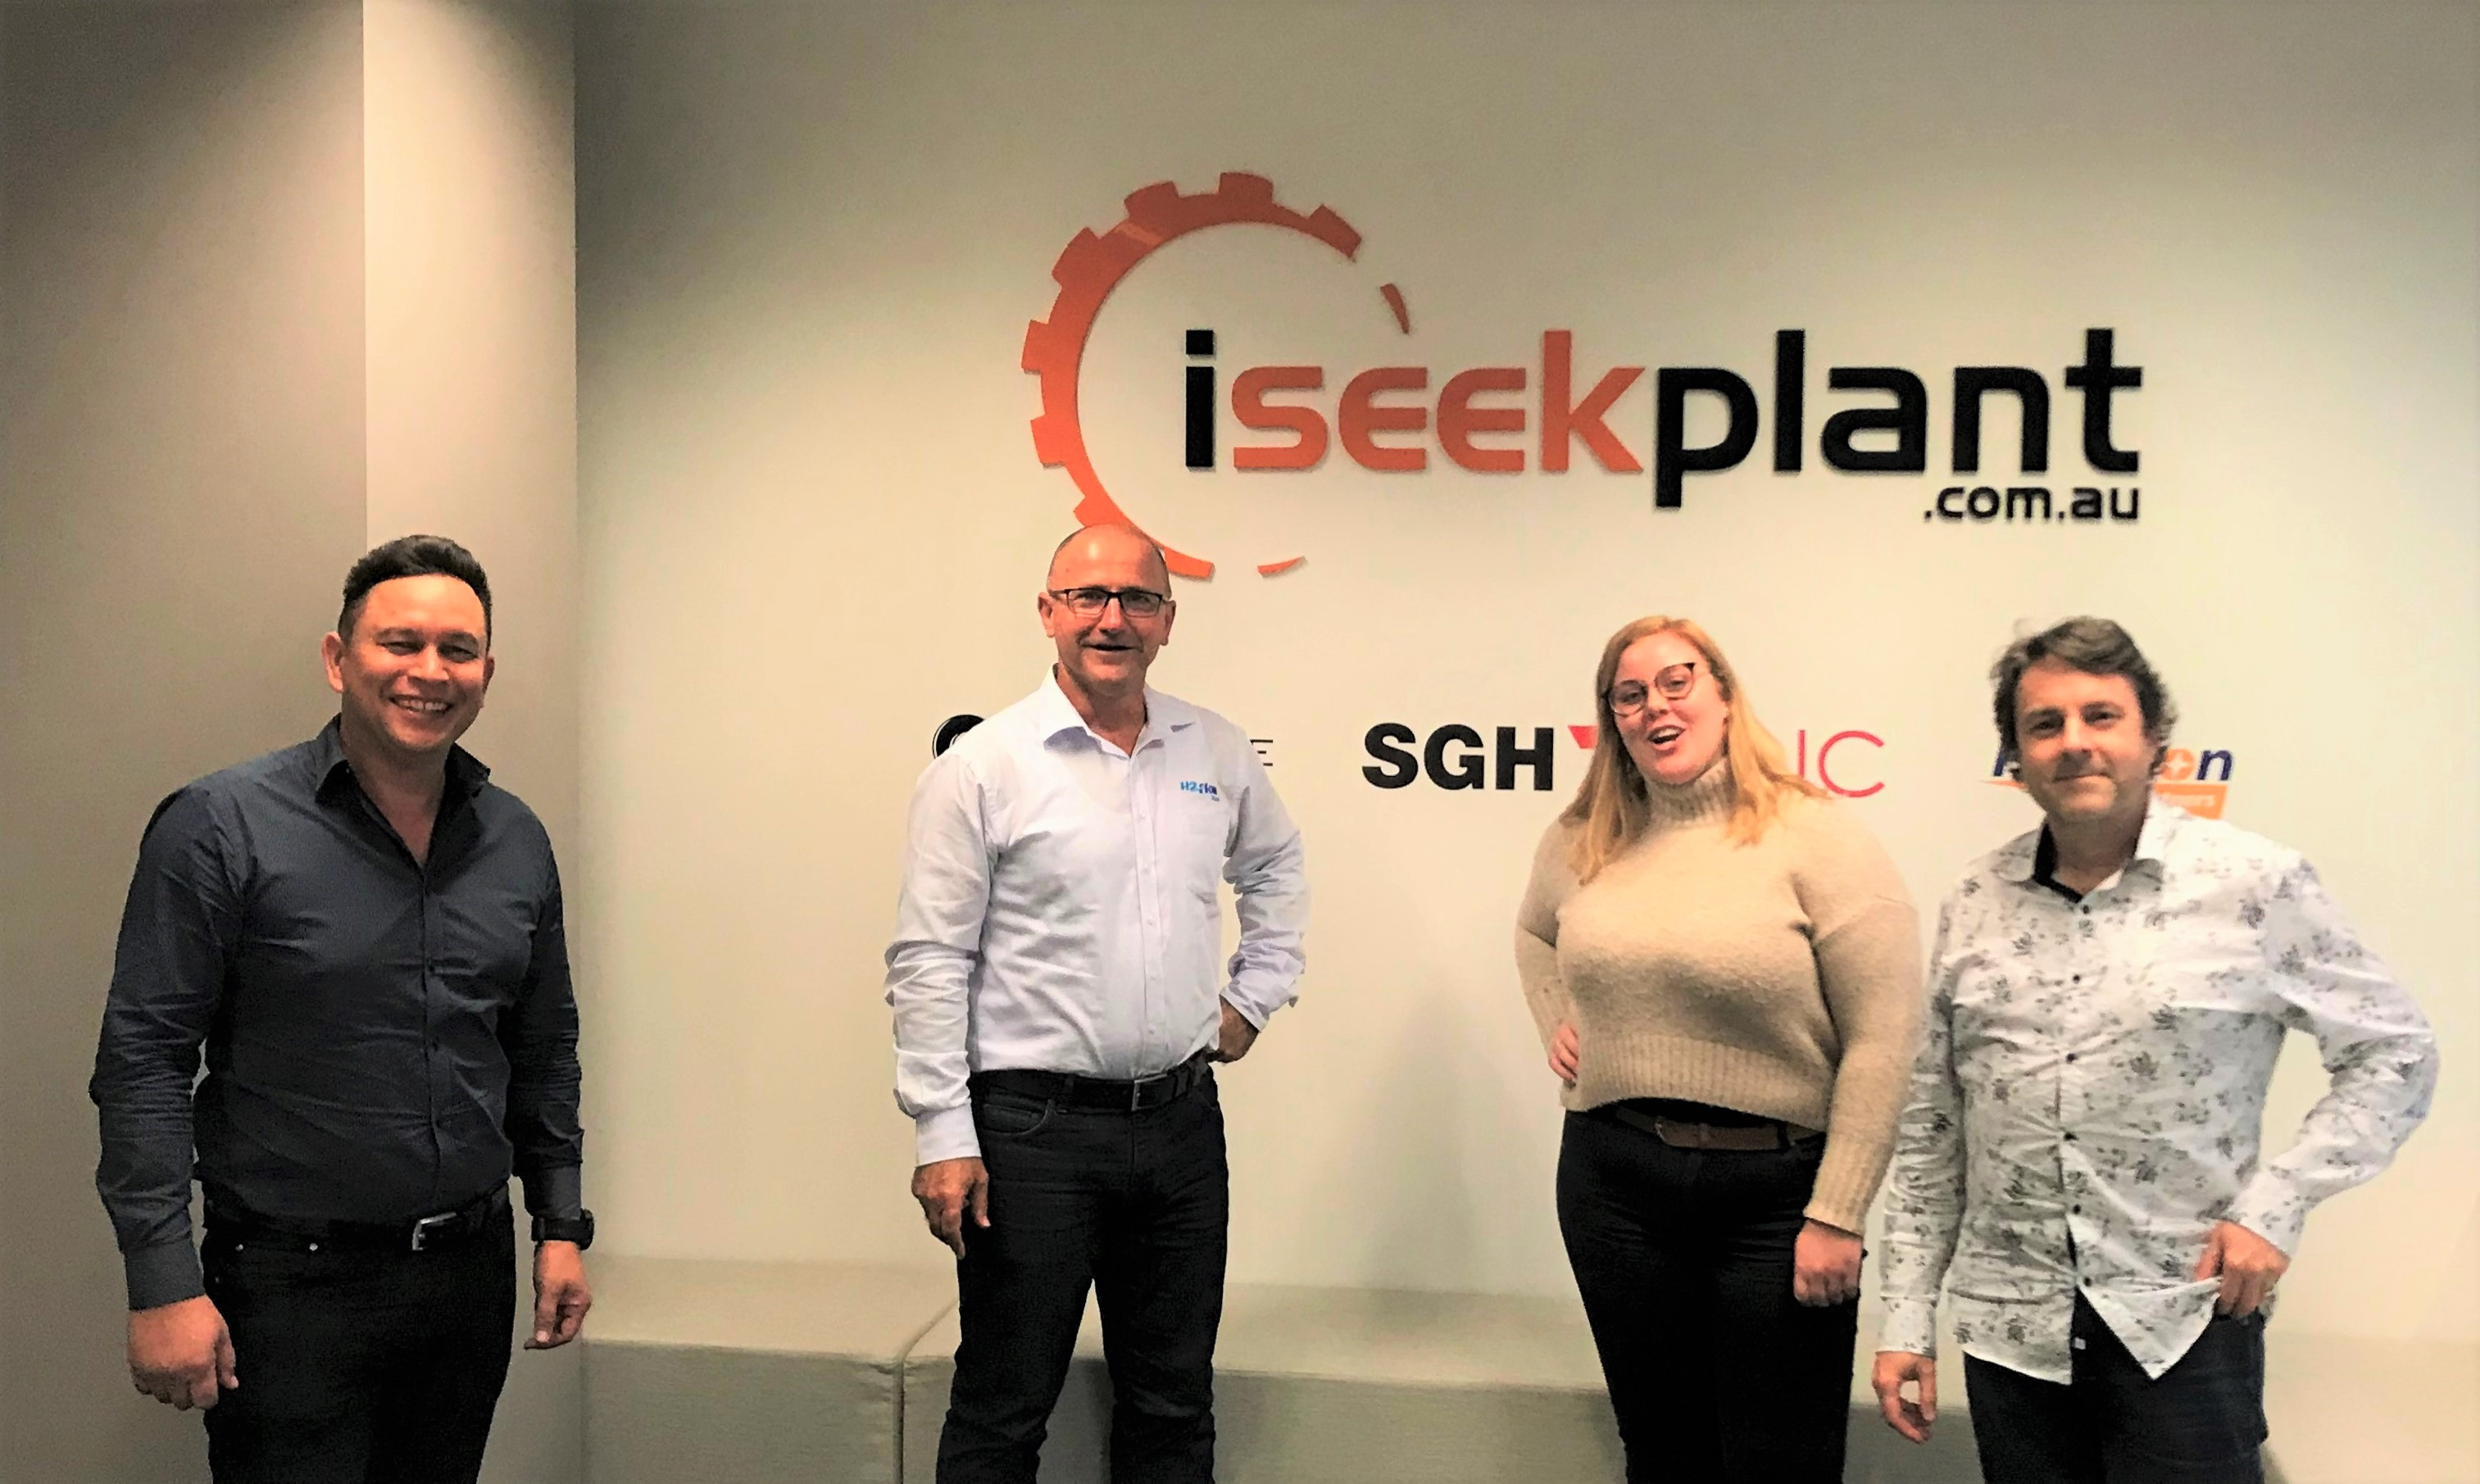 Director Mark Broekman with the iseekplant team at their office.